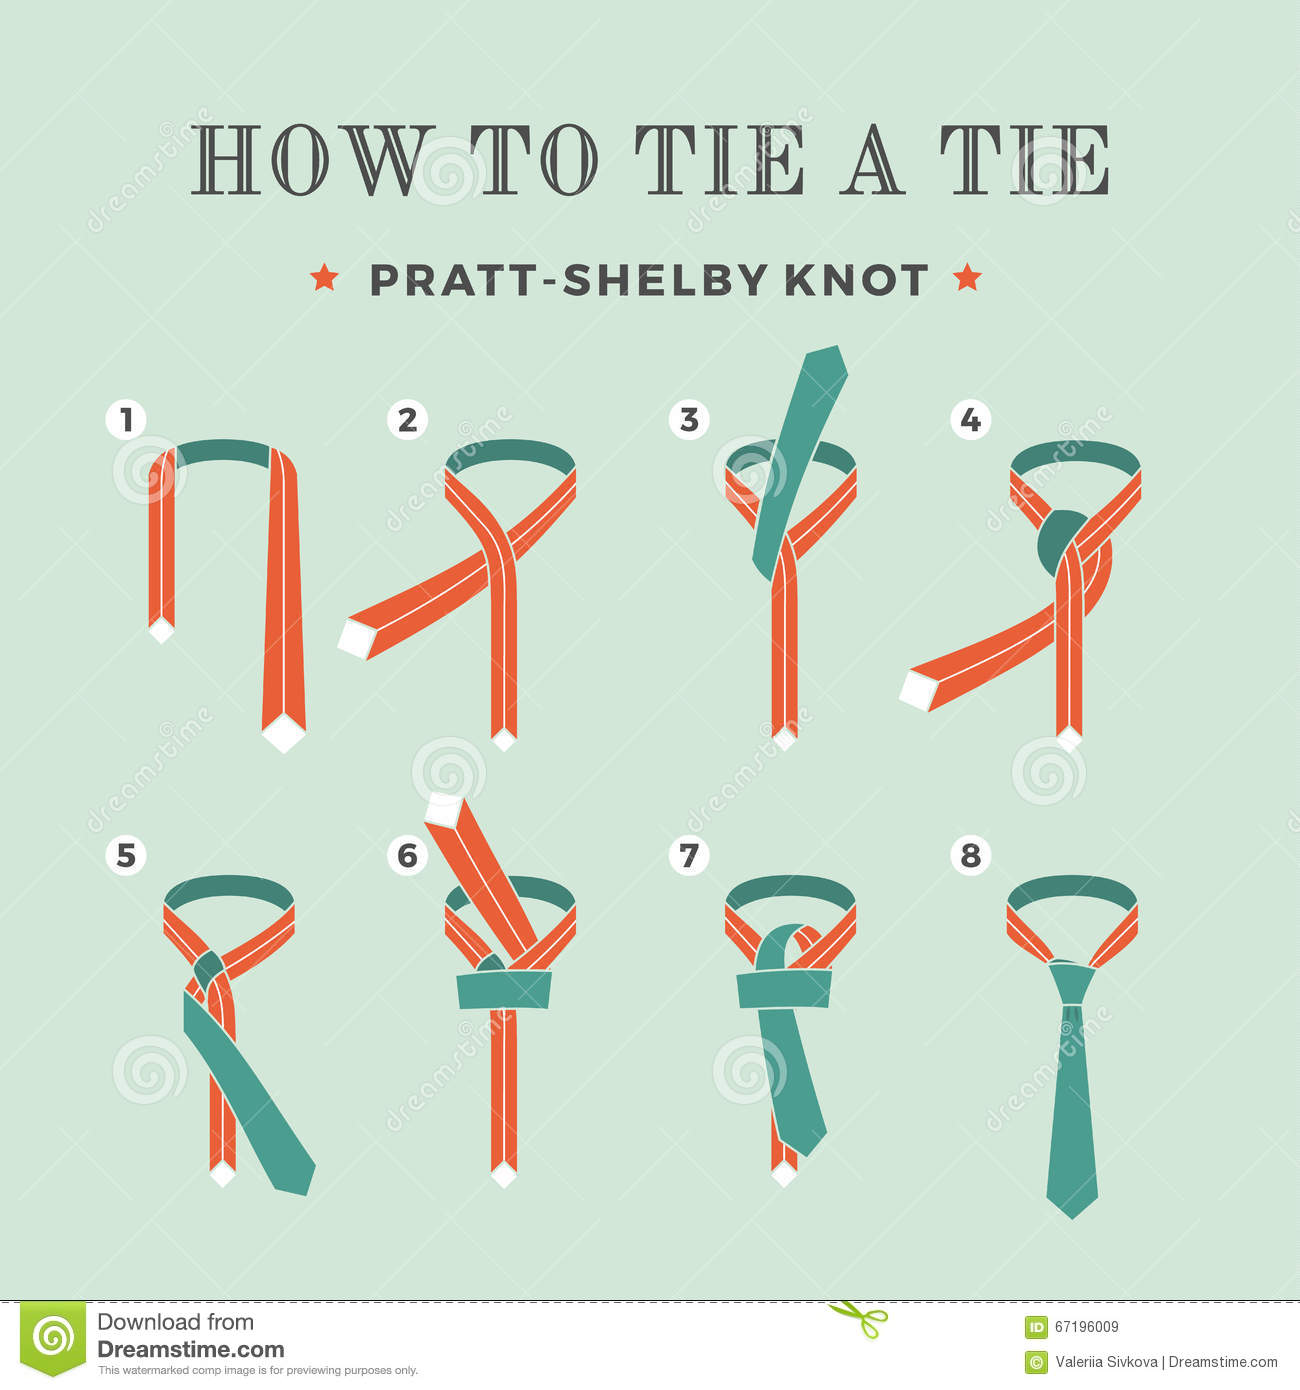 How to knot the tie step by step f f 2018 how to knot the tie step by step next image ccuart Image collections